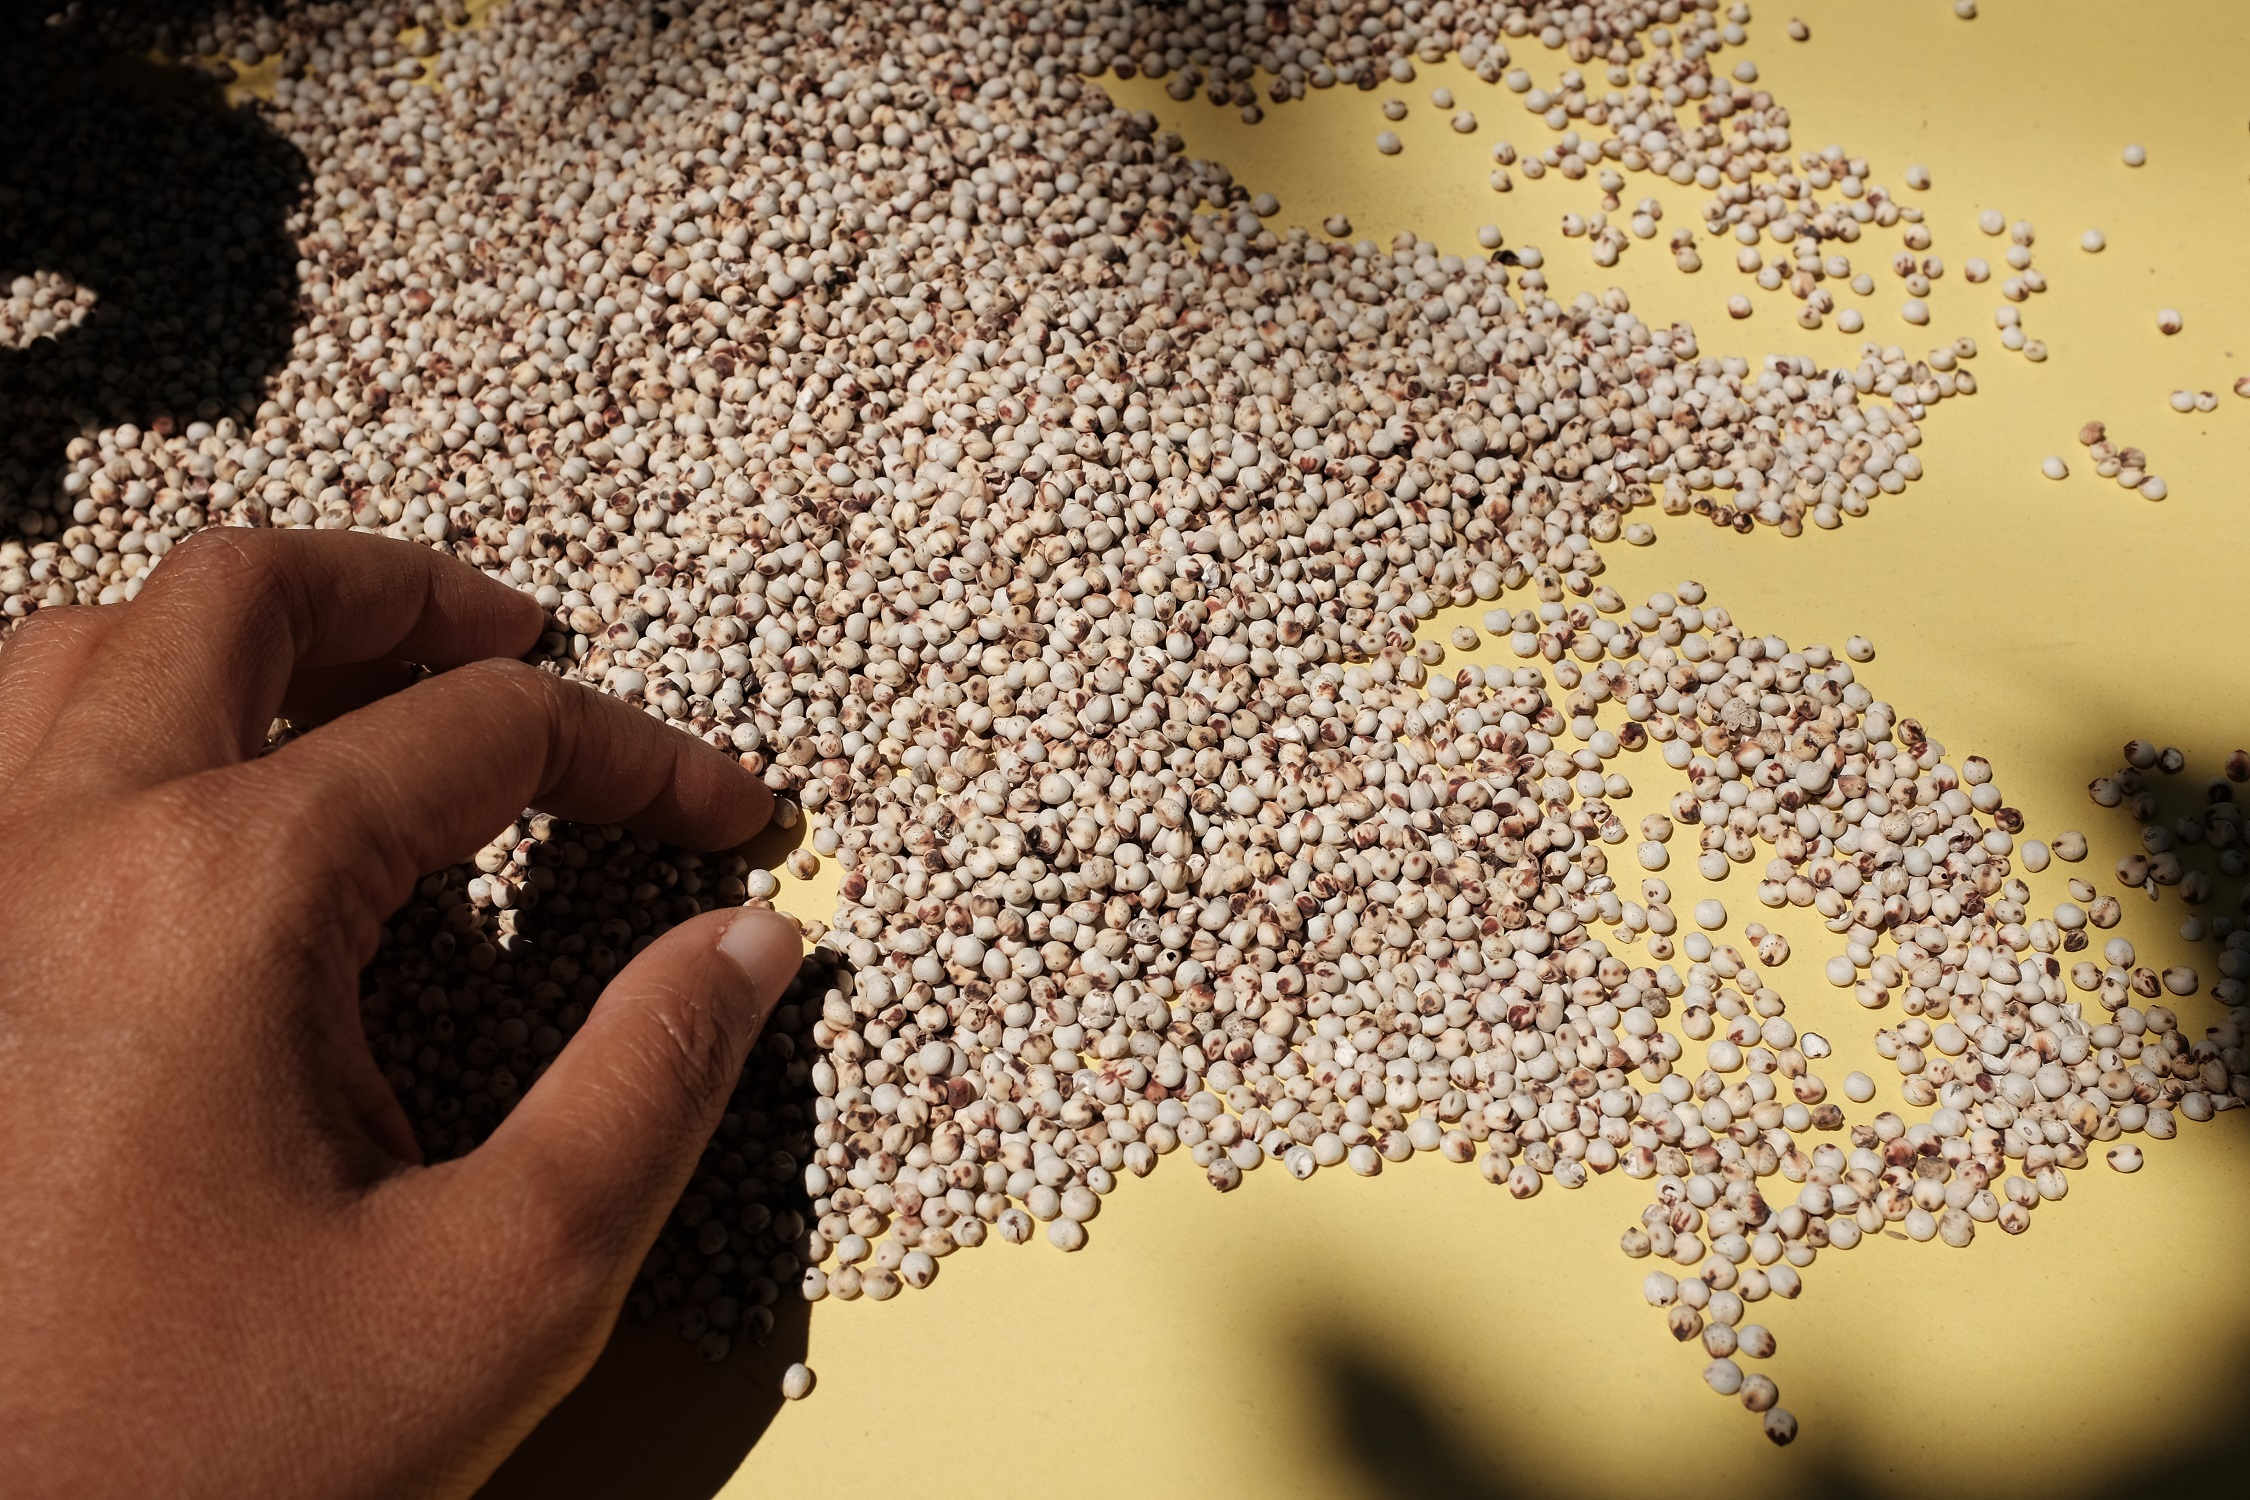 Using Natural Insecticide When Storing Grain Can Increase Farmers Profitability by 87%